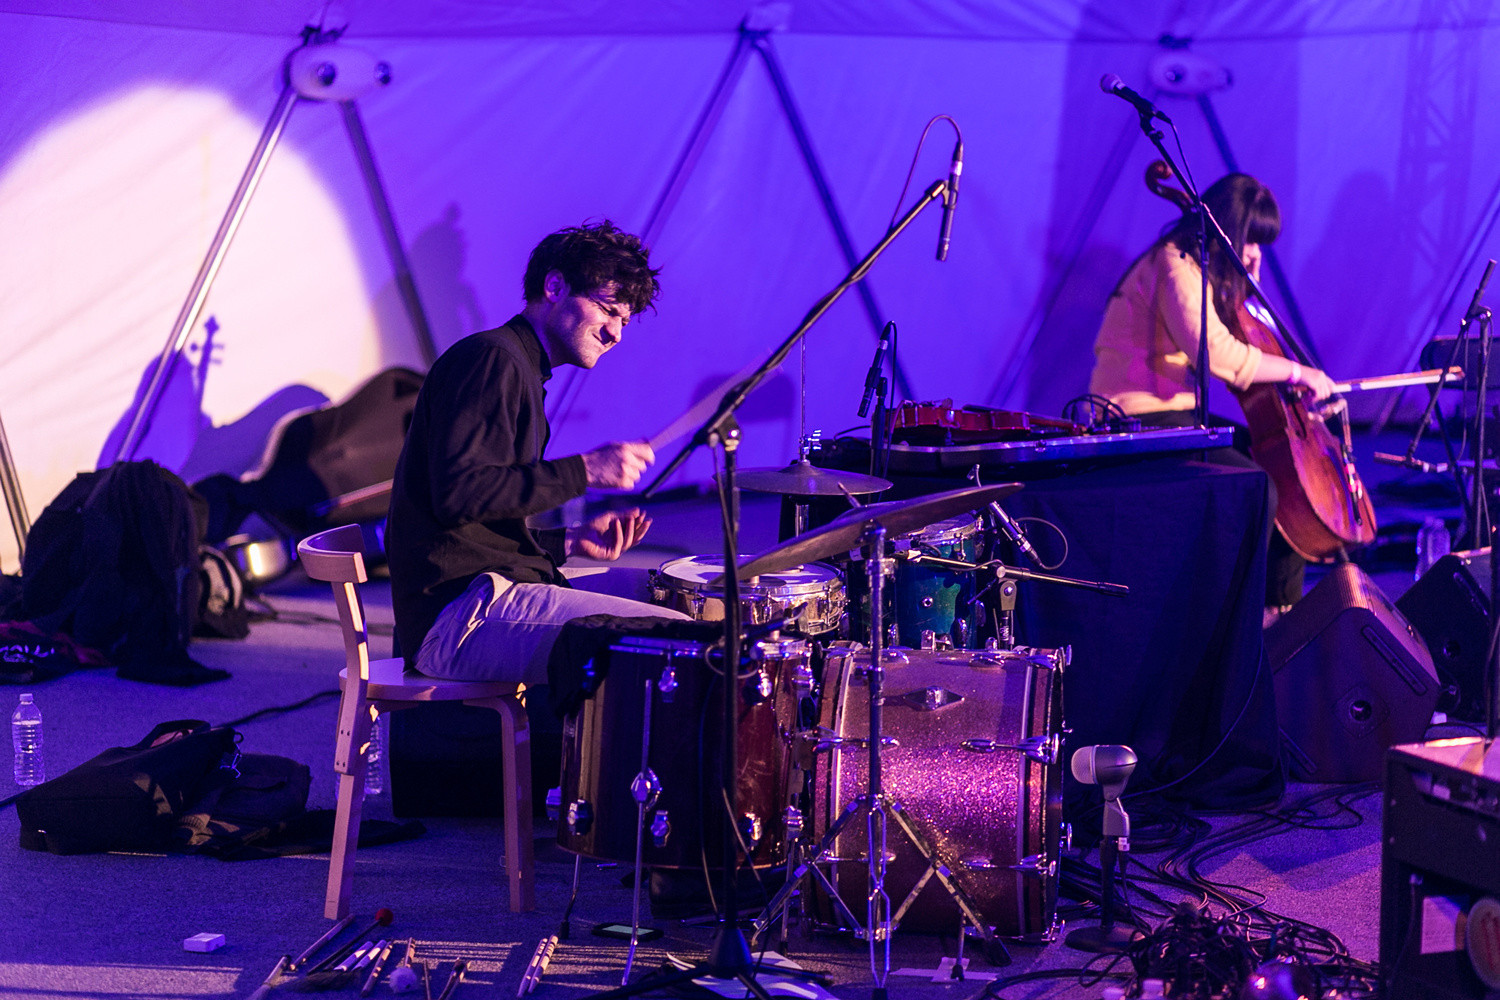 1+2+3: Solos, Duos, and Trios for Greater New York on November 15, 2015, presented at MoMA PS1 as part of VW Sunday Sessions 2015-2016. Photo by Charles Roussel.